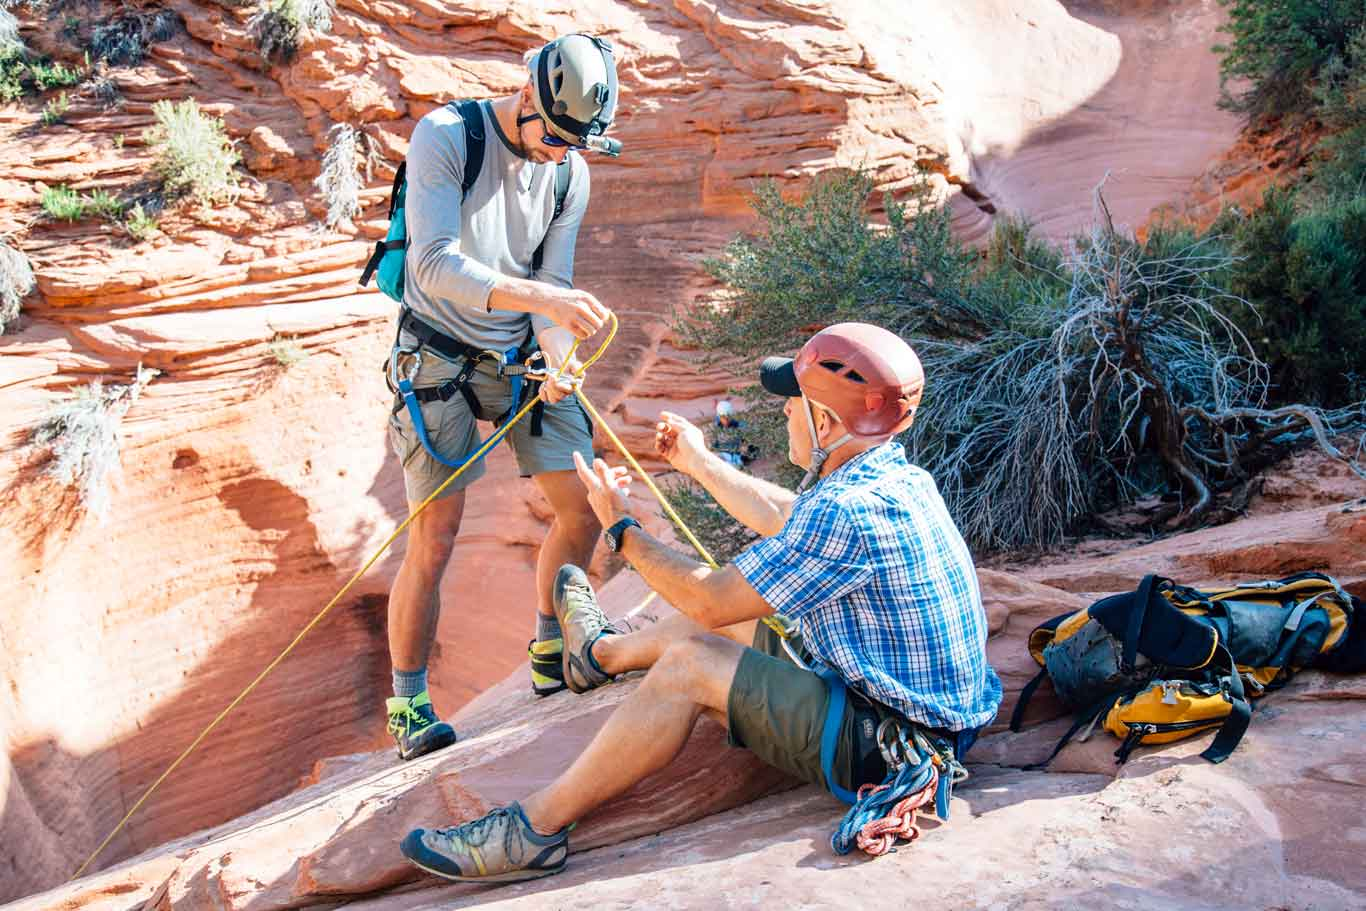 A guide showing Michael how to use ropes to repel into a slot canyon